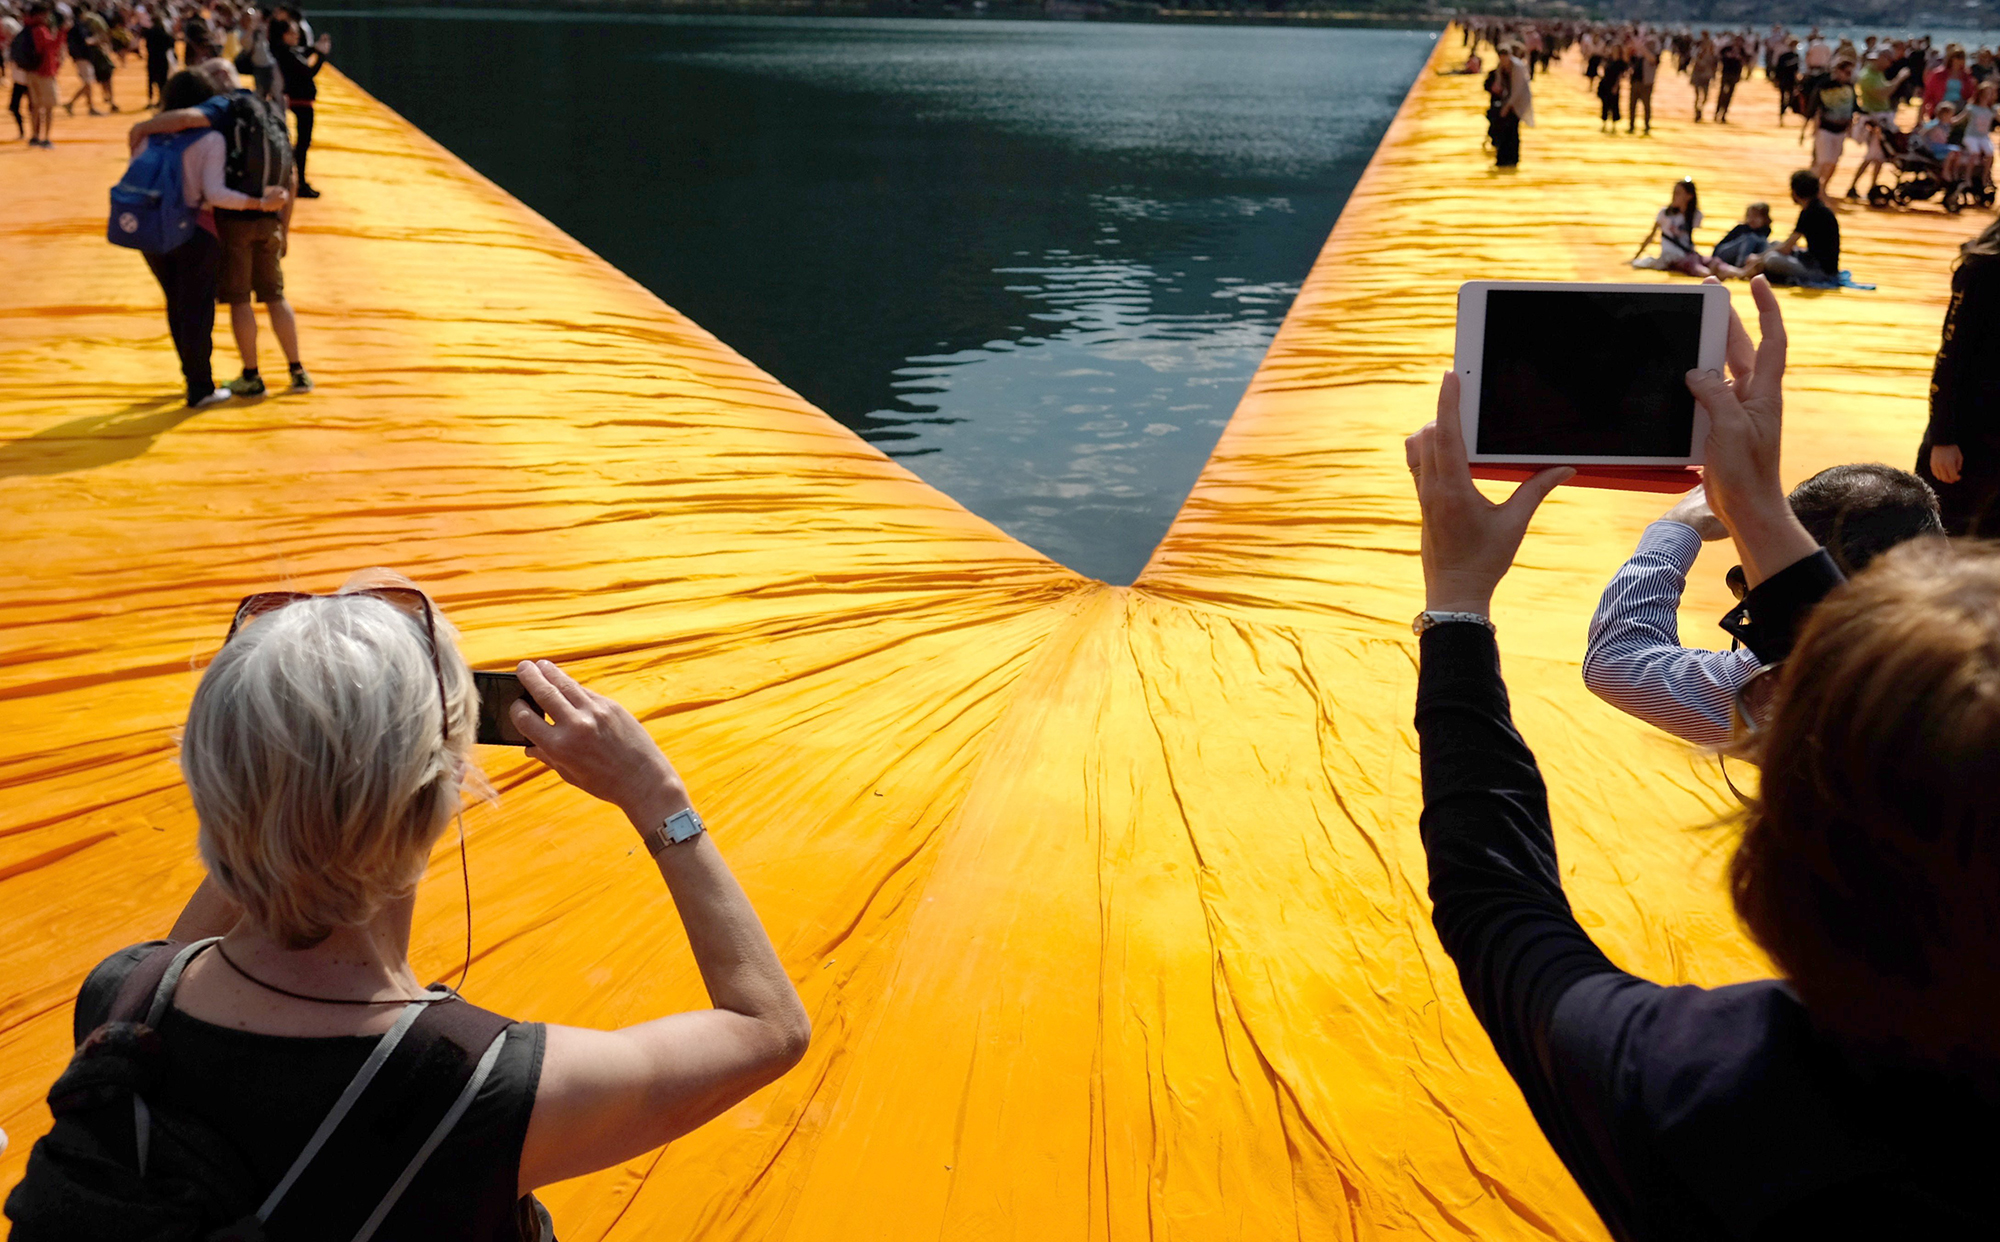 'The Floating Piers' Installation by Bulgarian artist Christo in Iseo, Italy, on June 8, 2016.